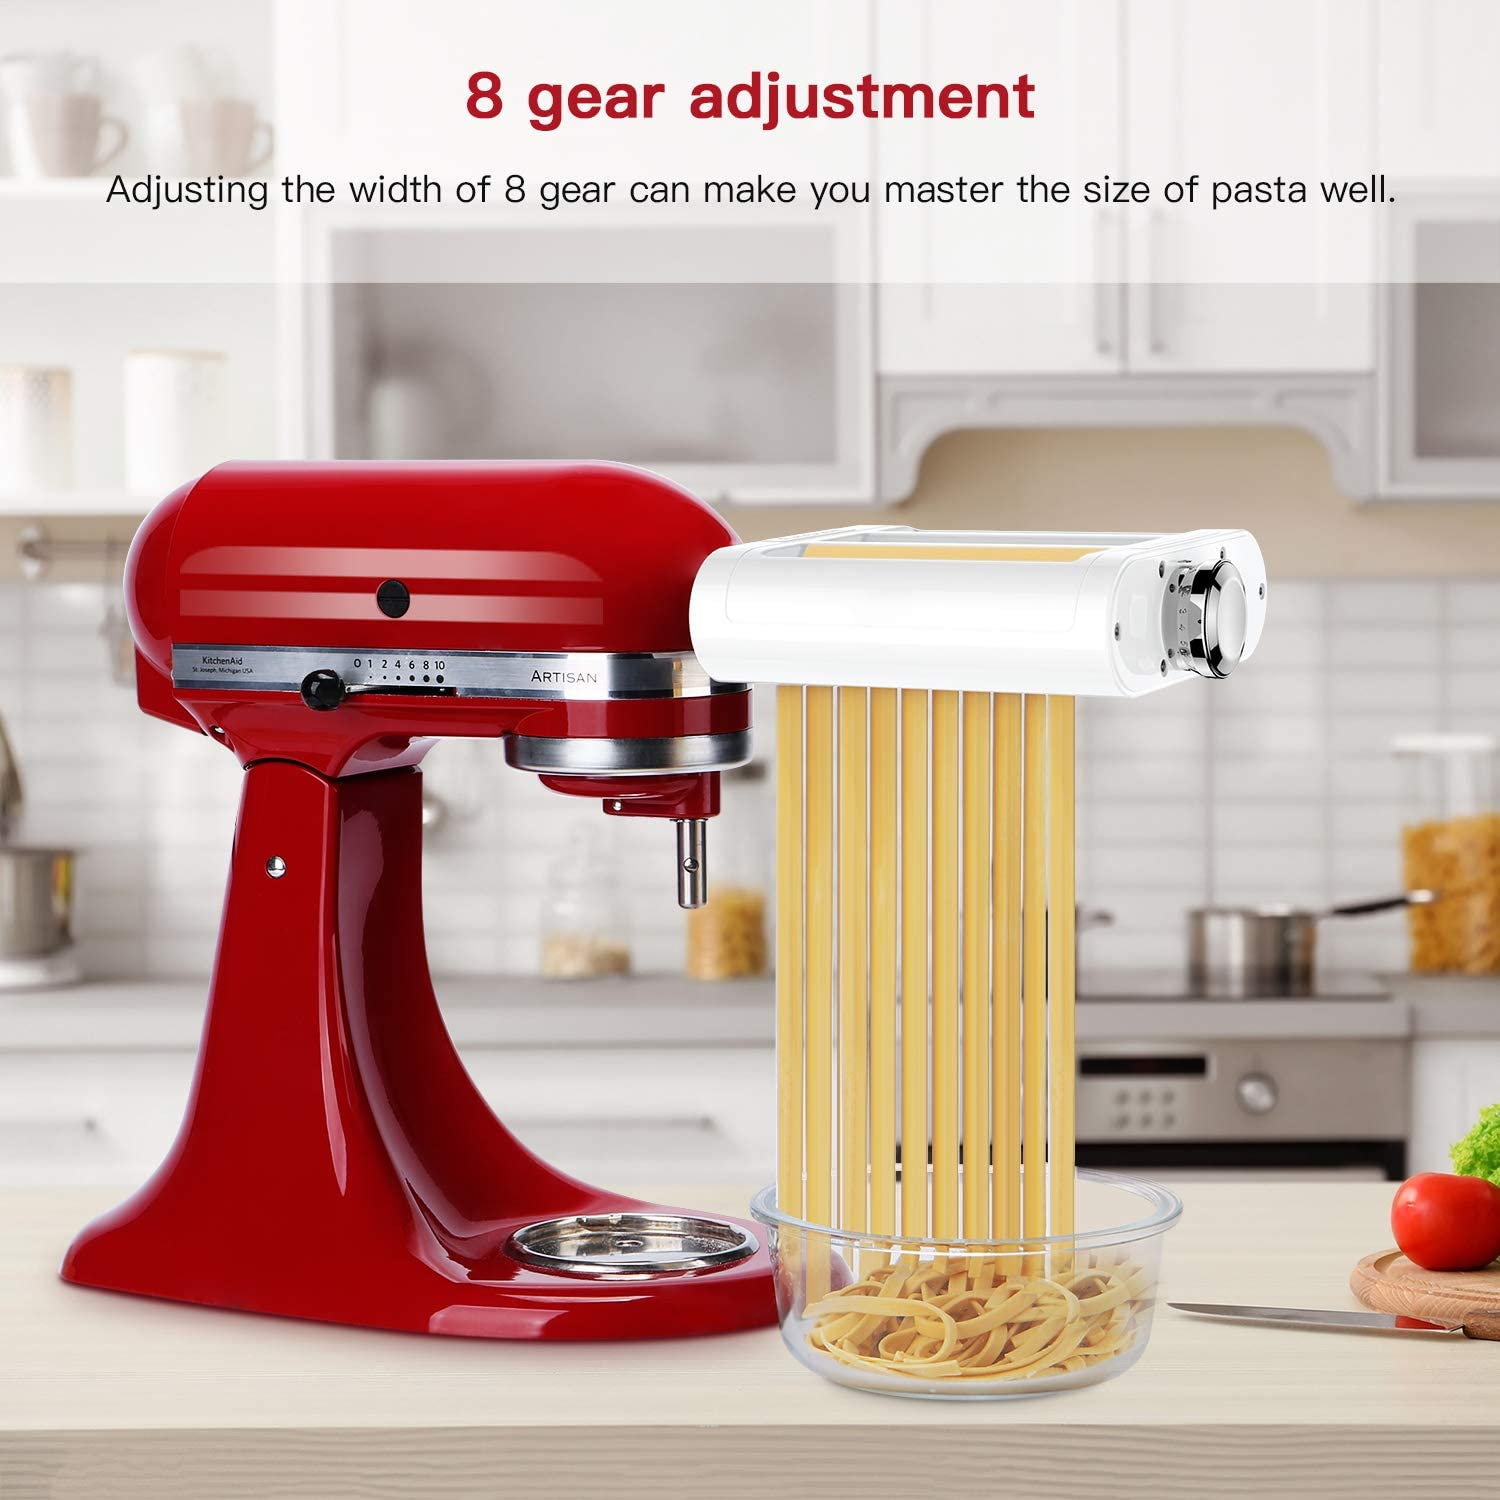 Pasta Roller by KitchenAid and cutter adjustments